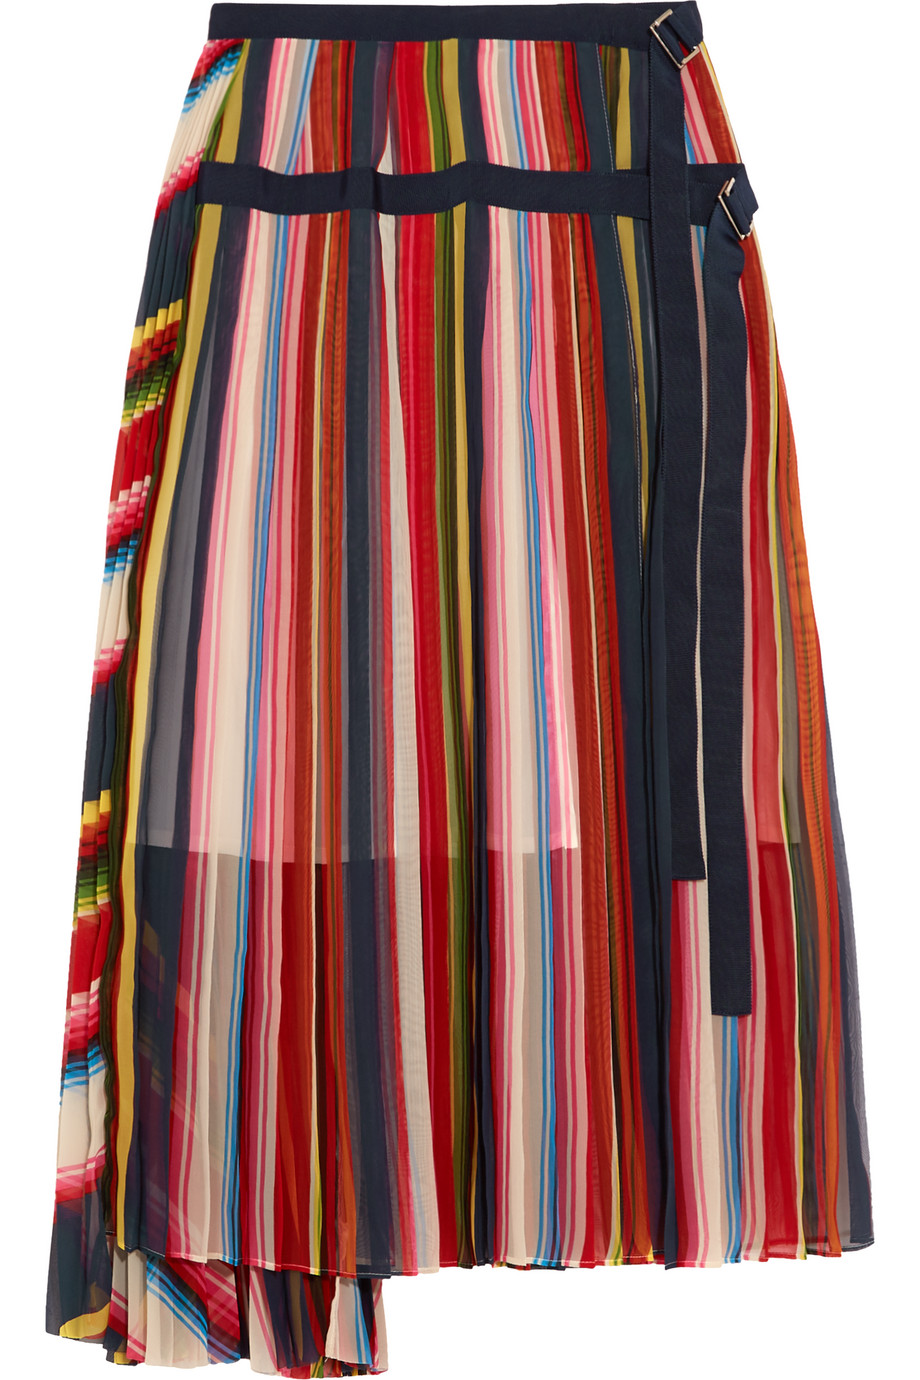 Sacai Grosgrain-Trimmed Pleated Striped Chiffon Skirt, Red/Pink, Women's, Size: 2